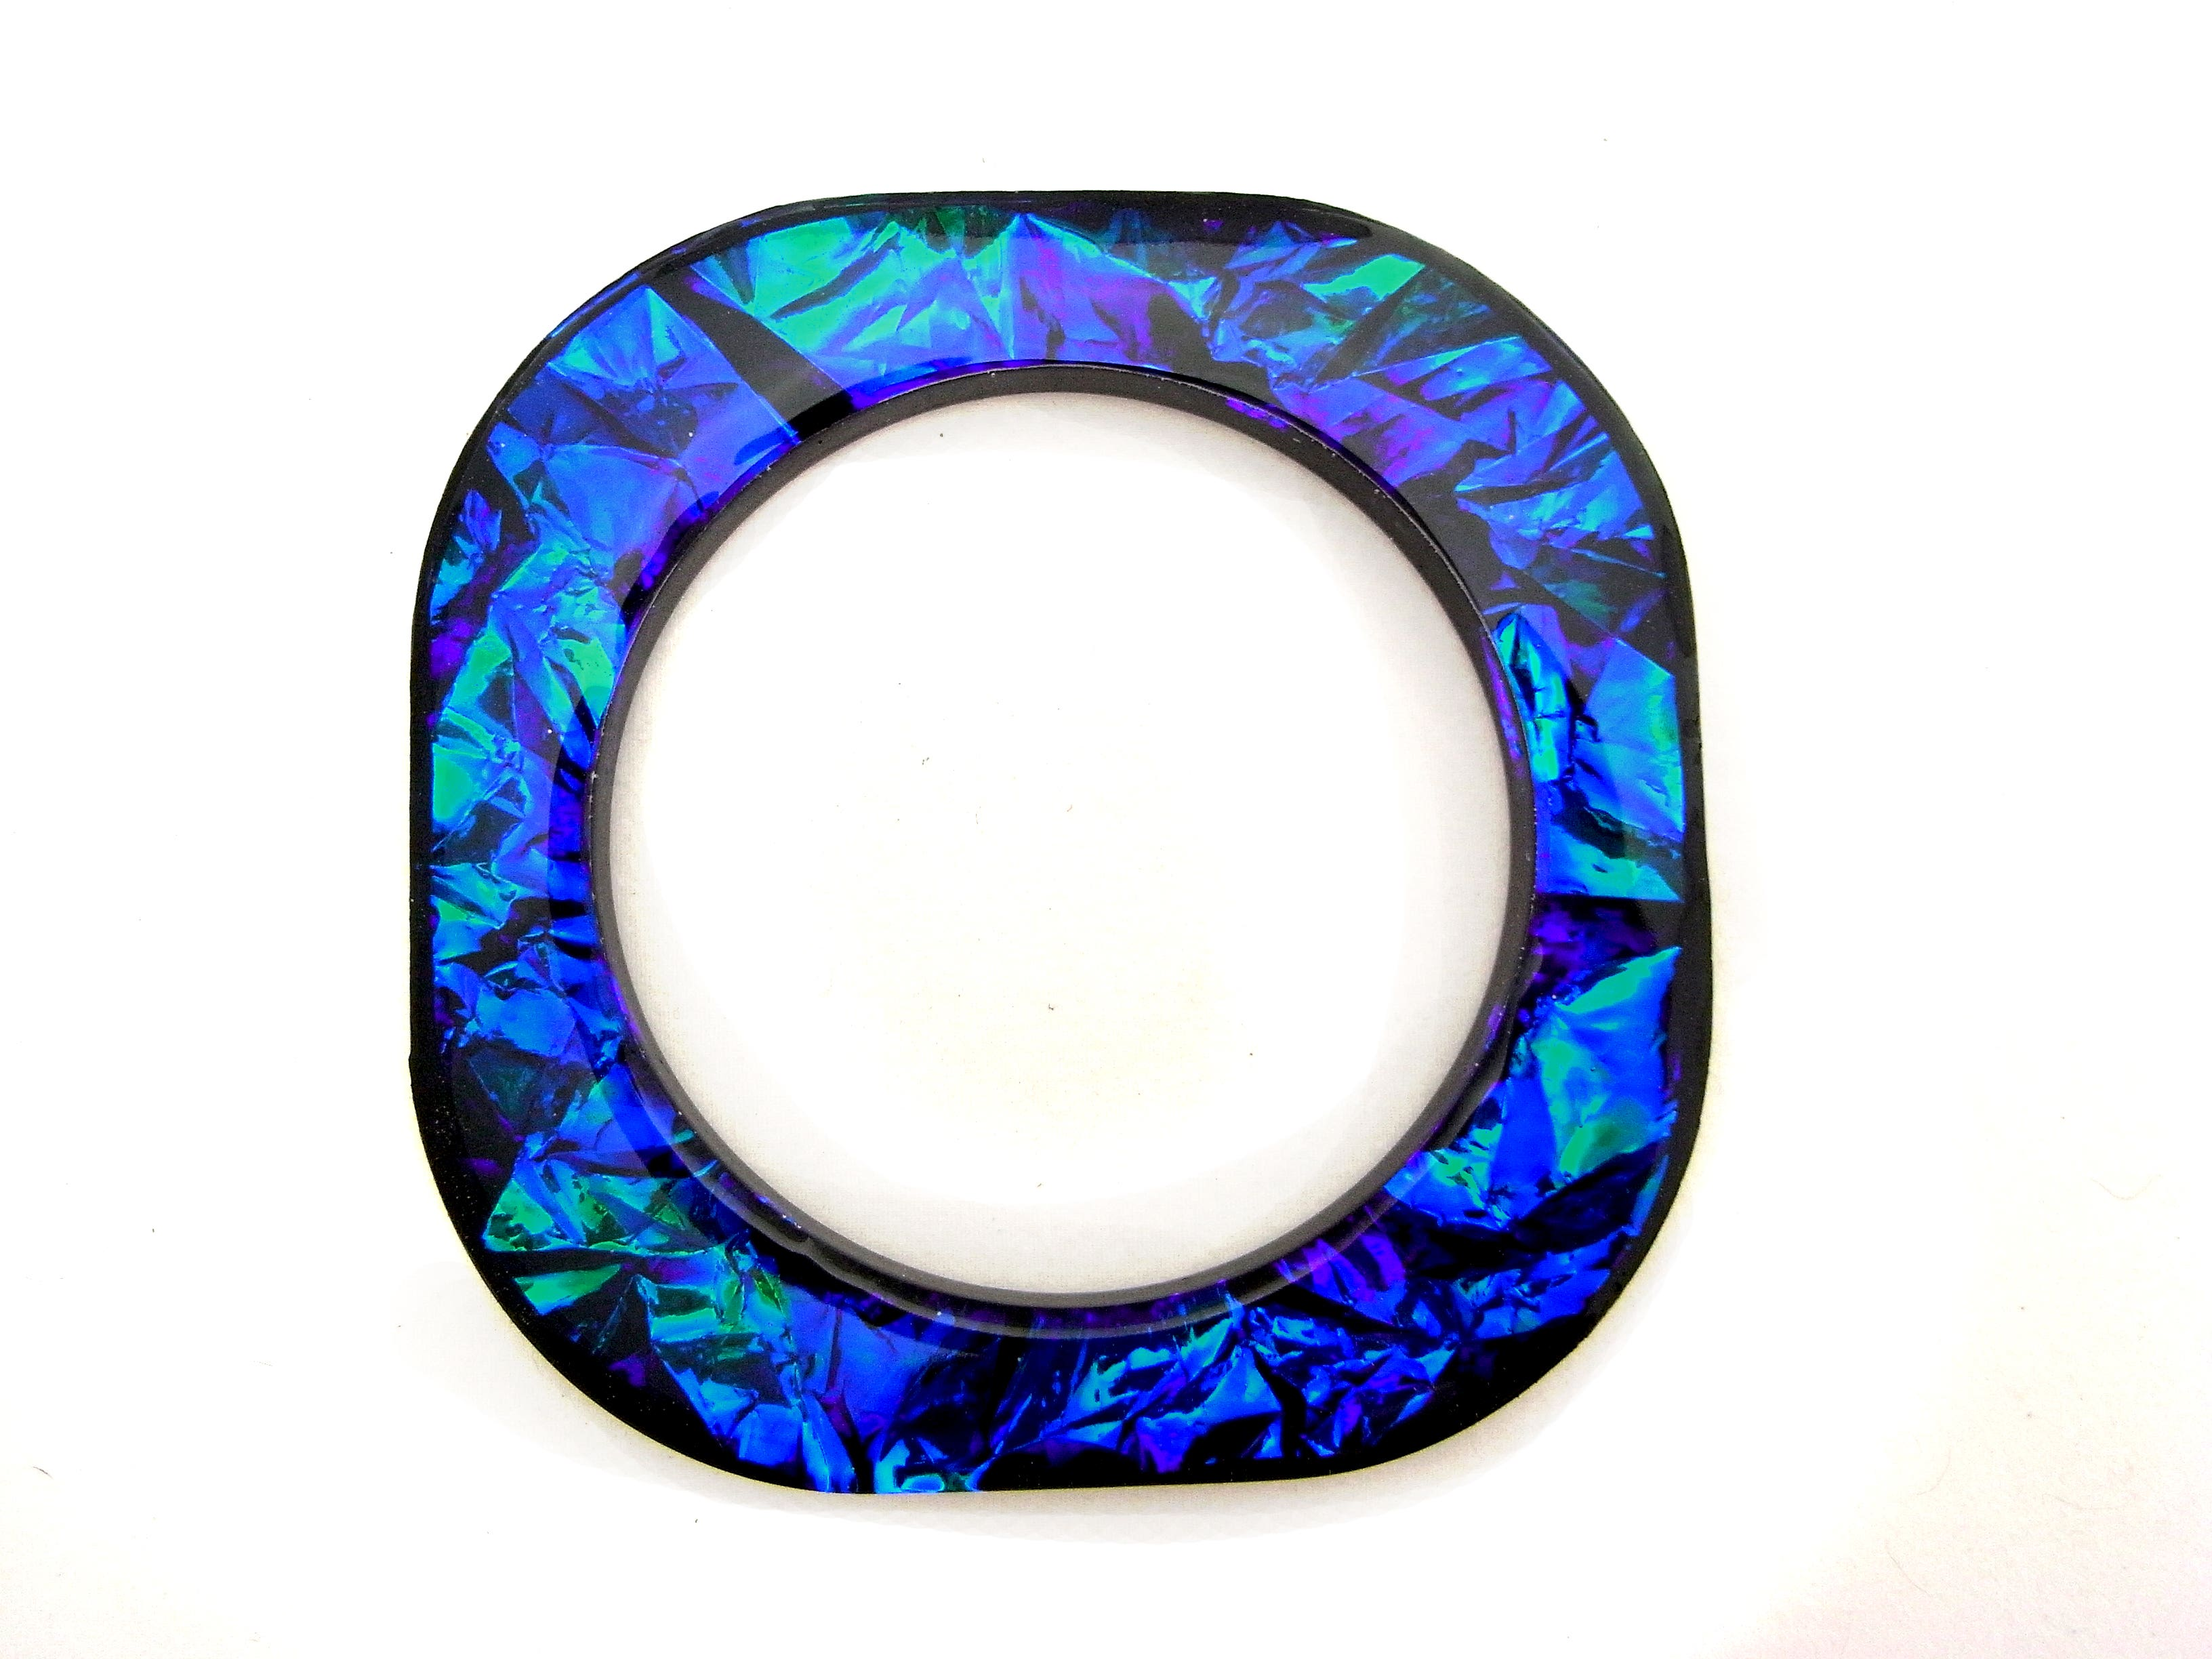 Flat square bangle with rounded corners filled with iridescent film in peacock colours.Iridescent